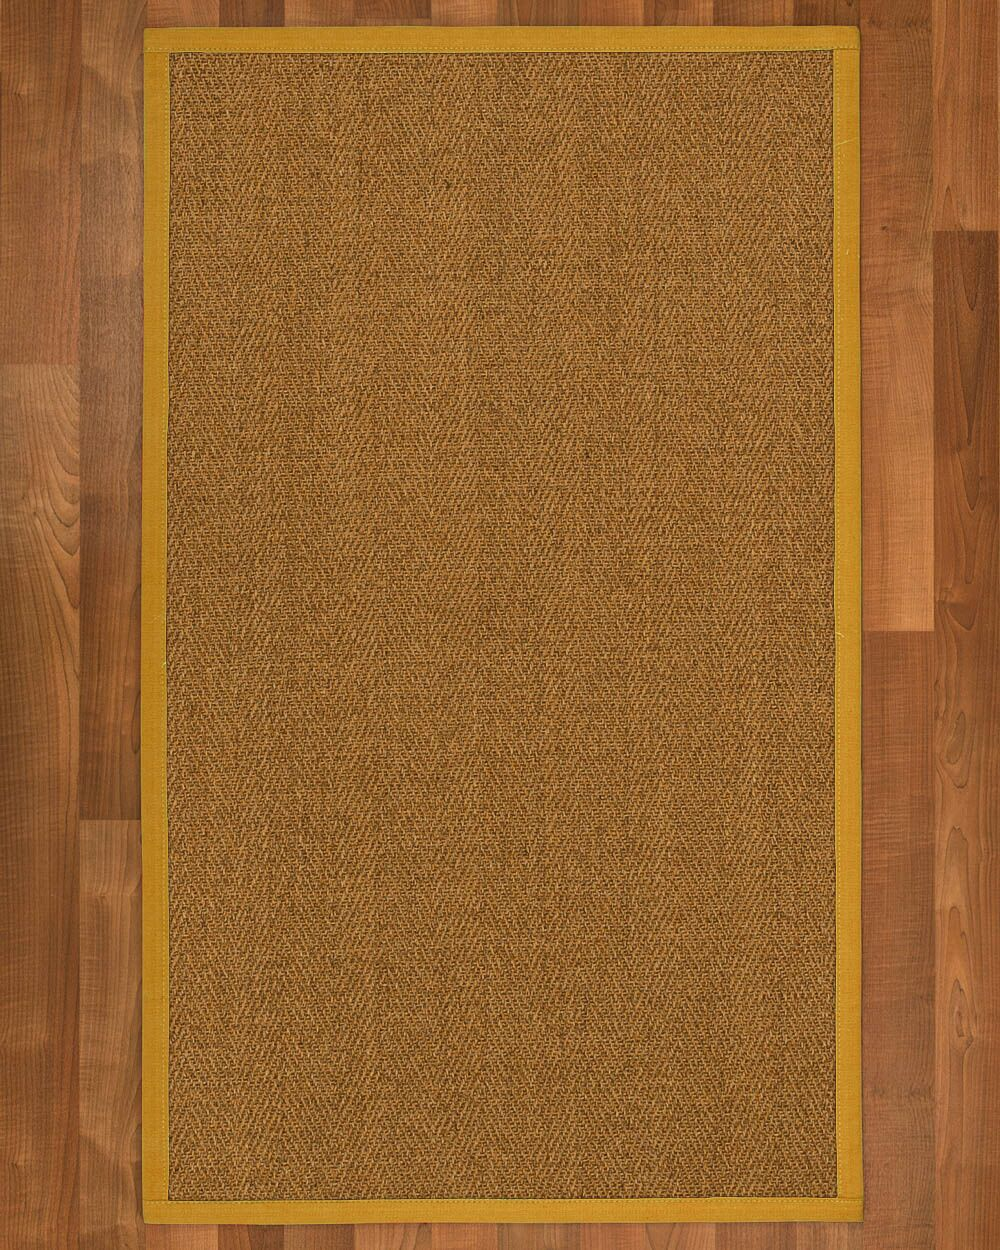 Asmund Border Hand-Woven Brown/Tan Area Rug Rug Size: Rectangle 12' x 15', Rug Pad Included: Yes